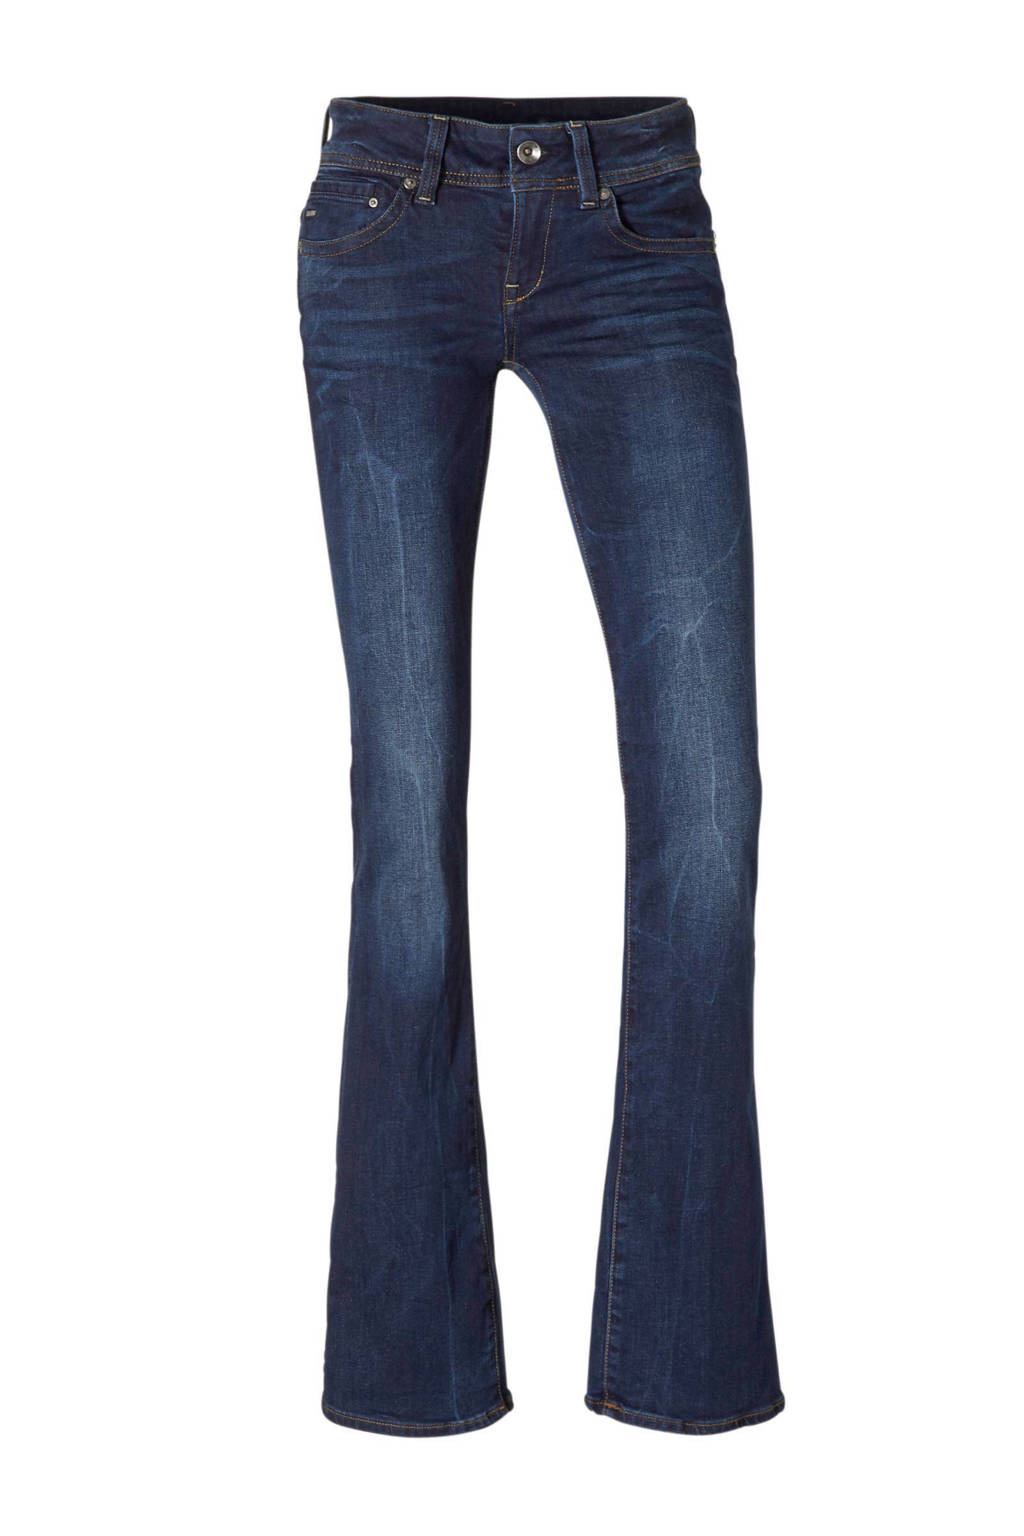 Piet Zoomers, G Star Dames jeans